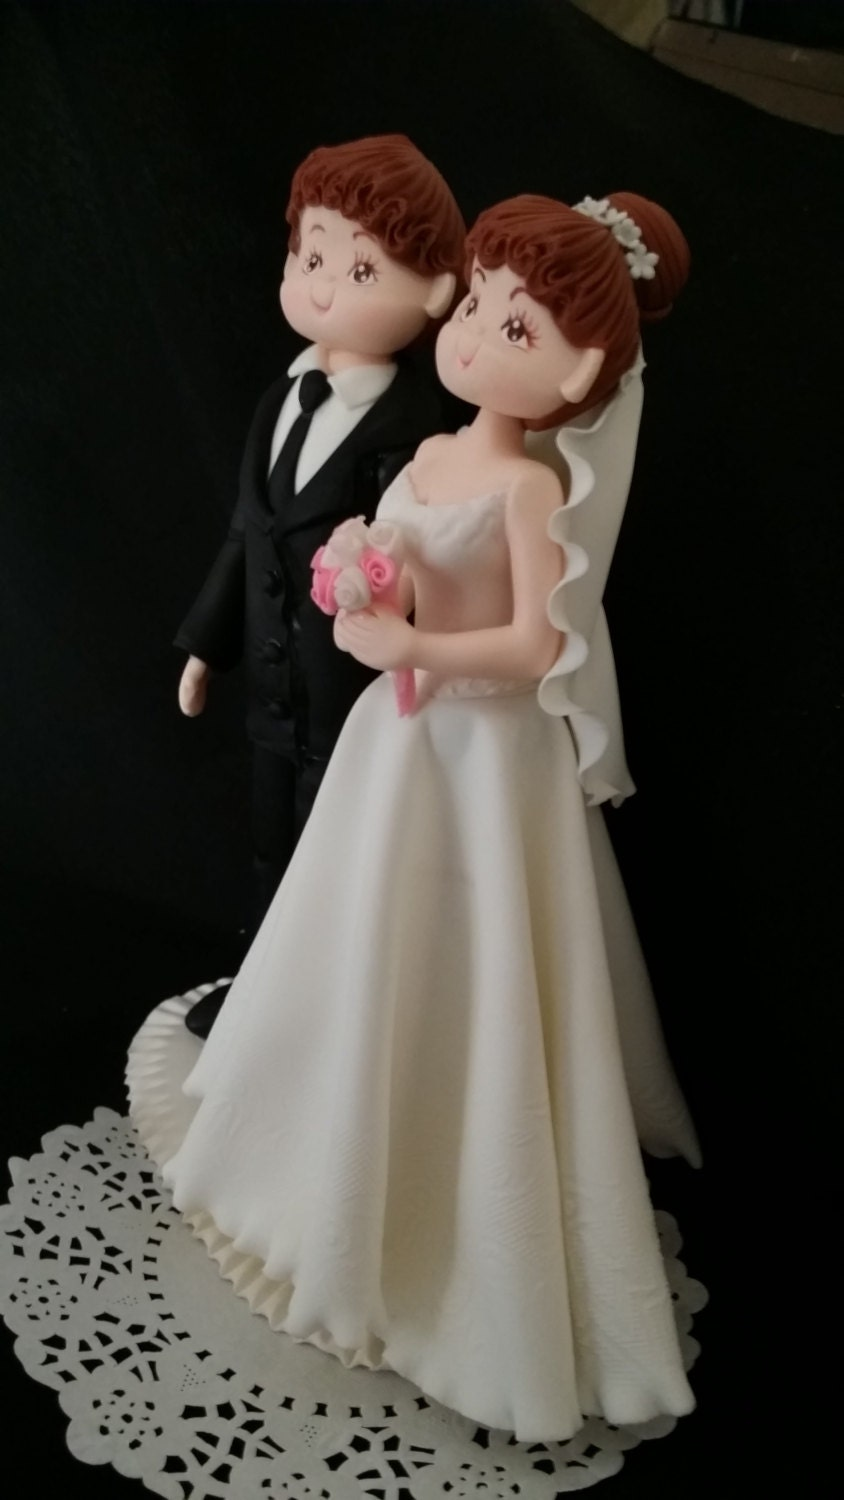 wedding cake toppers etsy wedding cake topper amp groom cake topper 8824